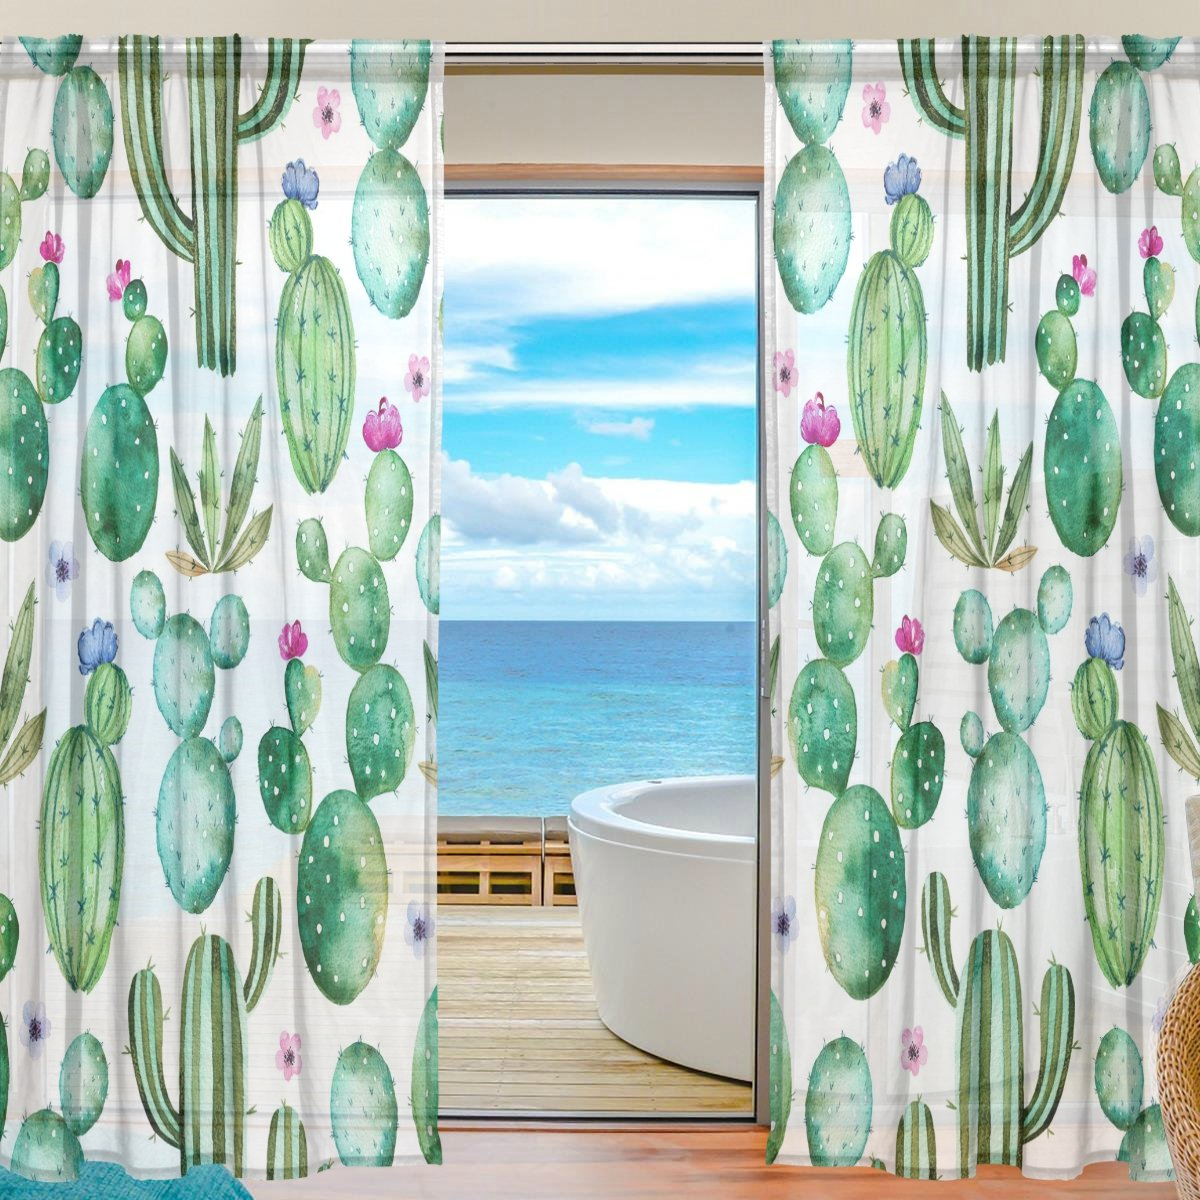 SEULIFE Window Sheer Curtain, Tropical Cactus Tree Flower Voile Curtain Drapes for Door Kitchen Living Room Bedroom 55x78 inches 2 Panels g3221957p112c126s167